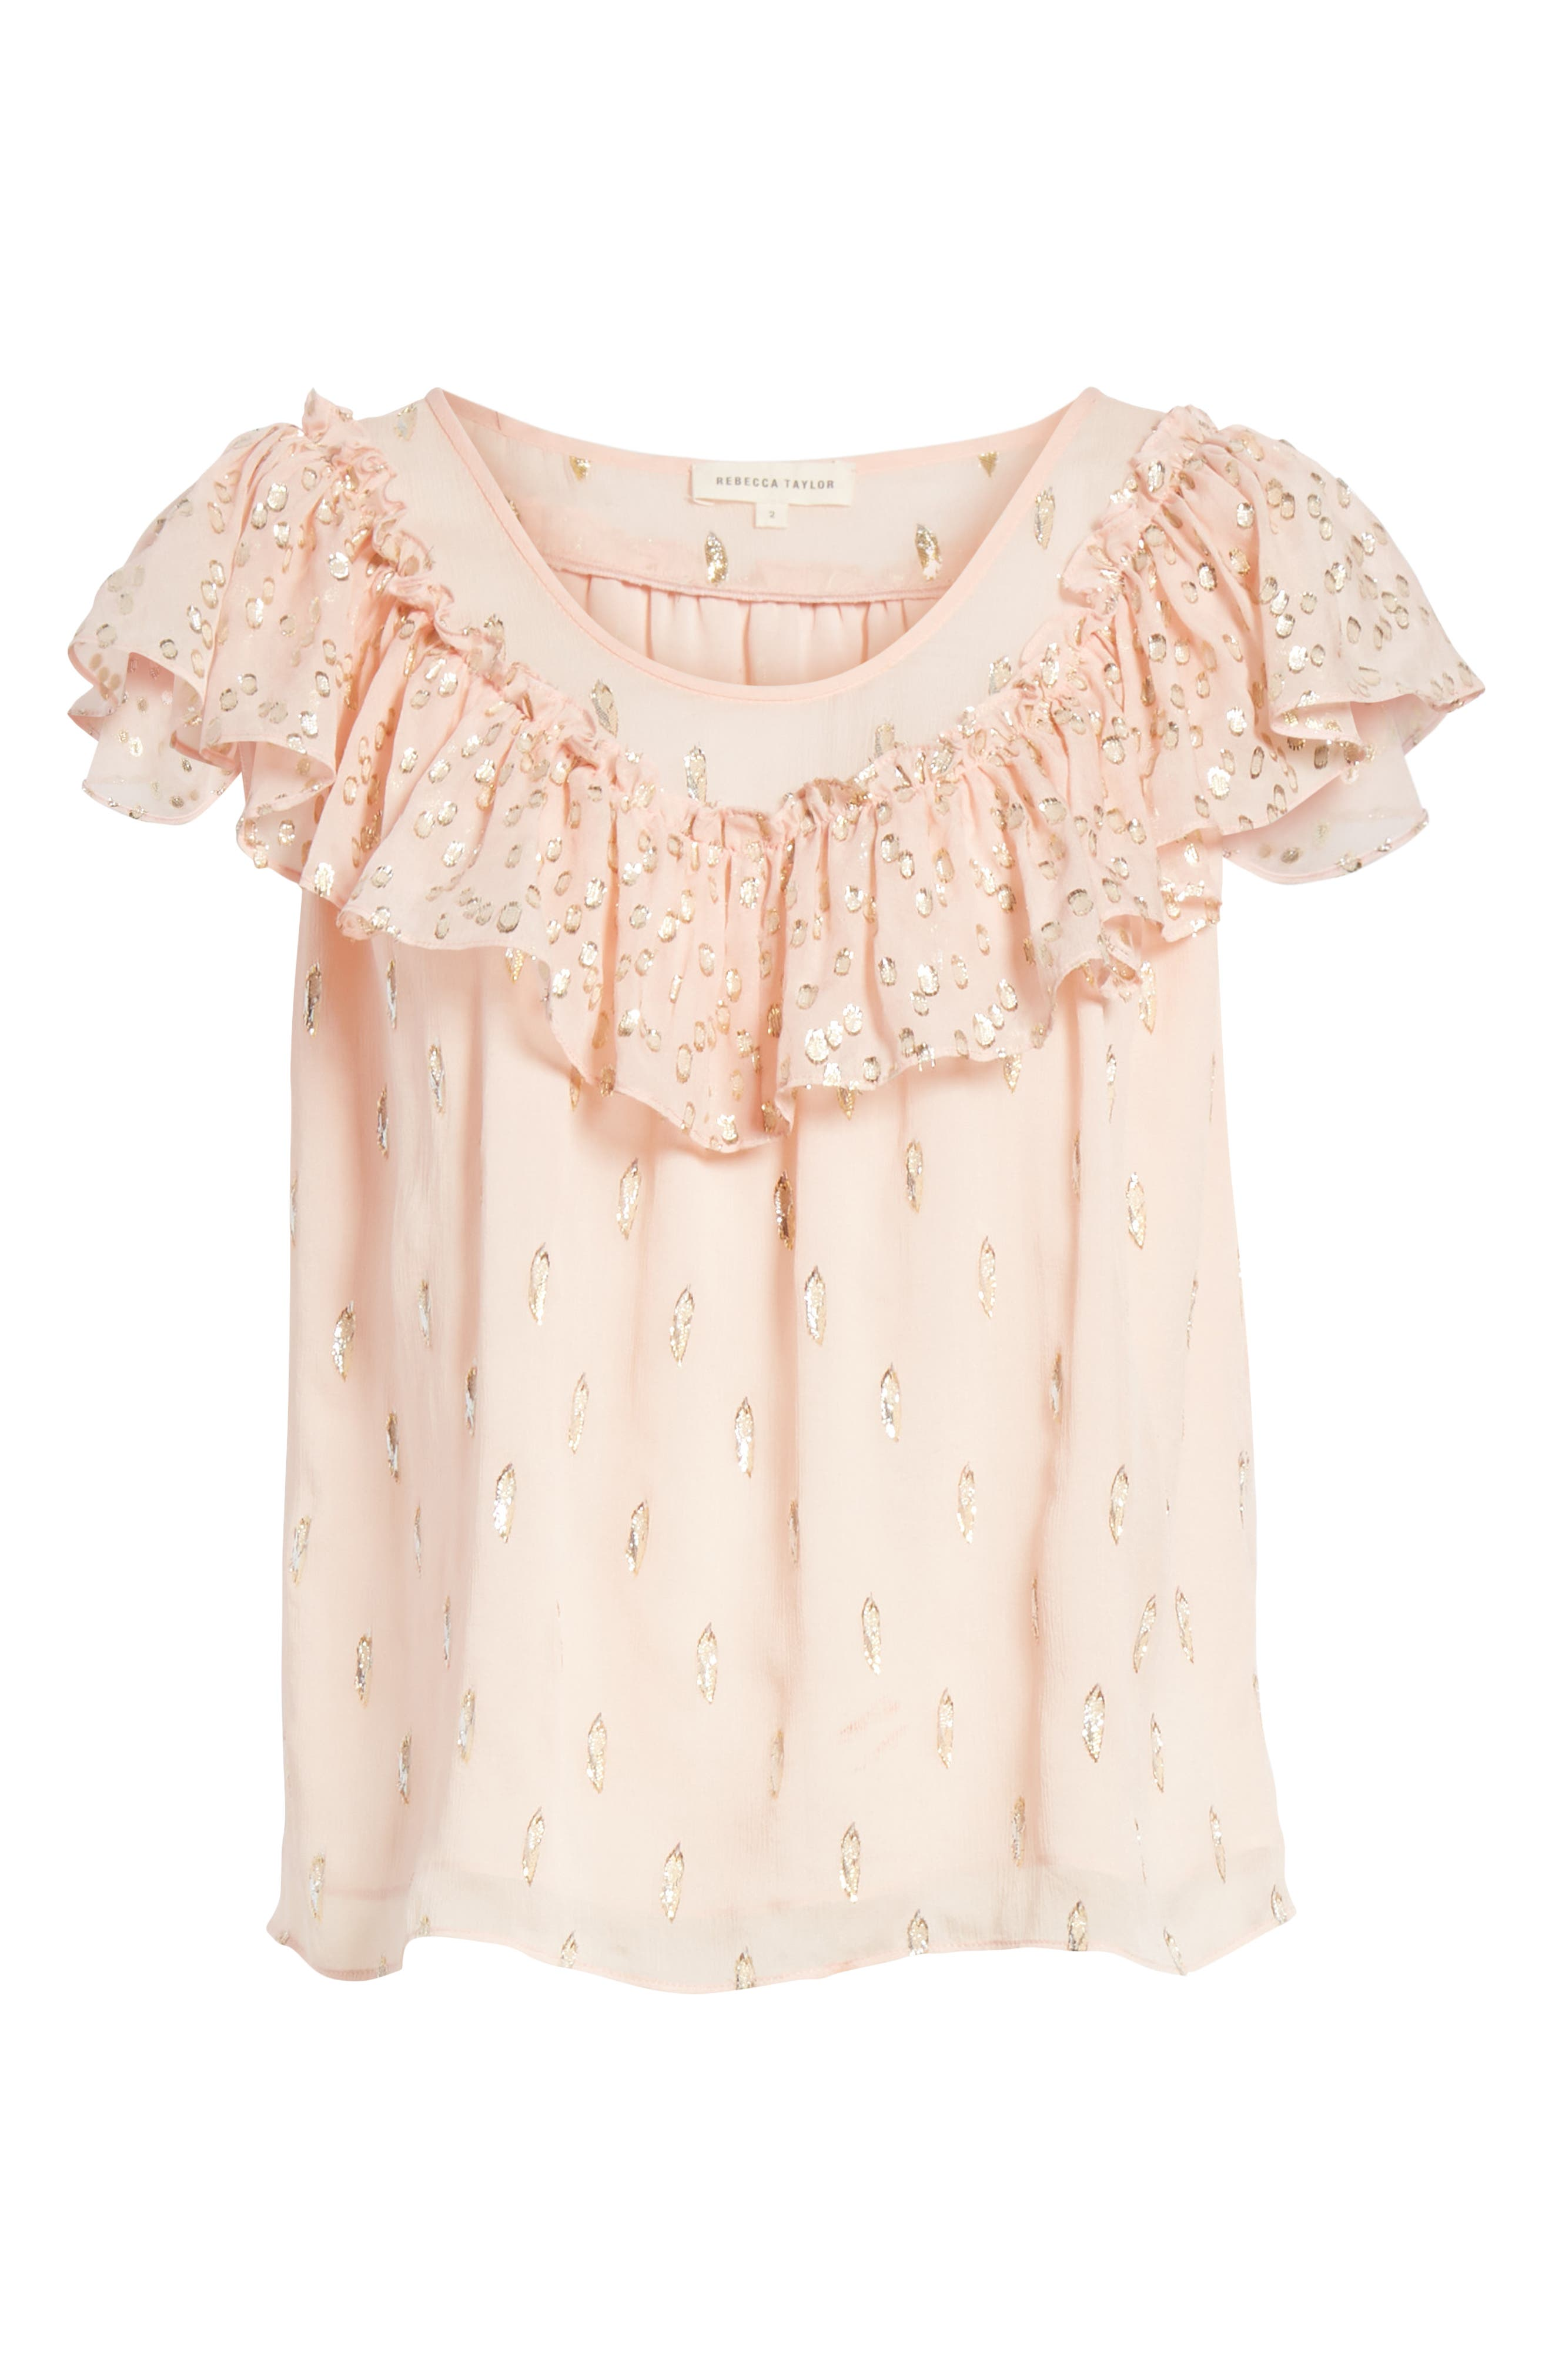 Metallic Fille Coupé Ruffle Silk Top,                             Alternate thumbnail 6, color,                             Powder Pink